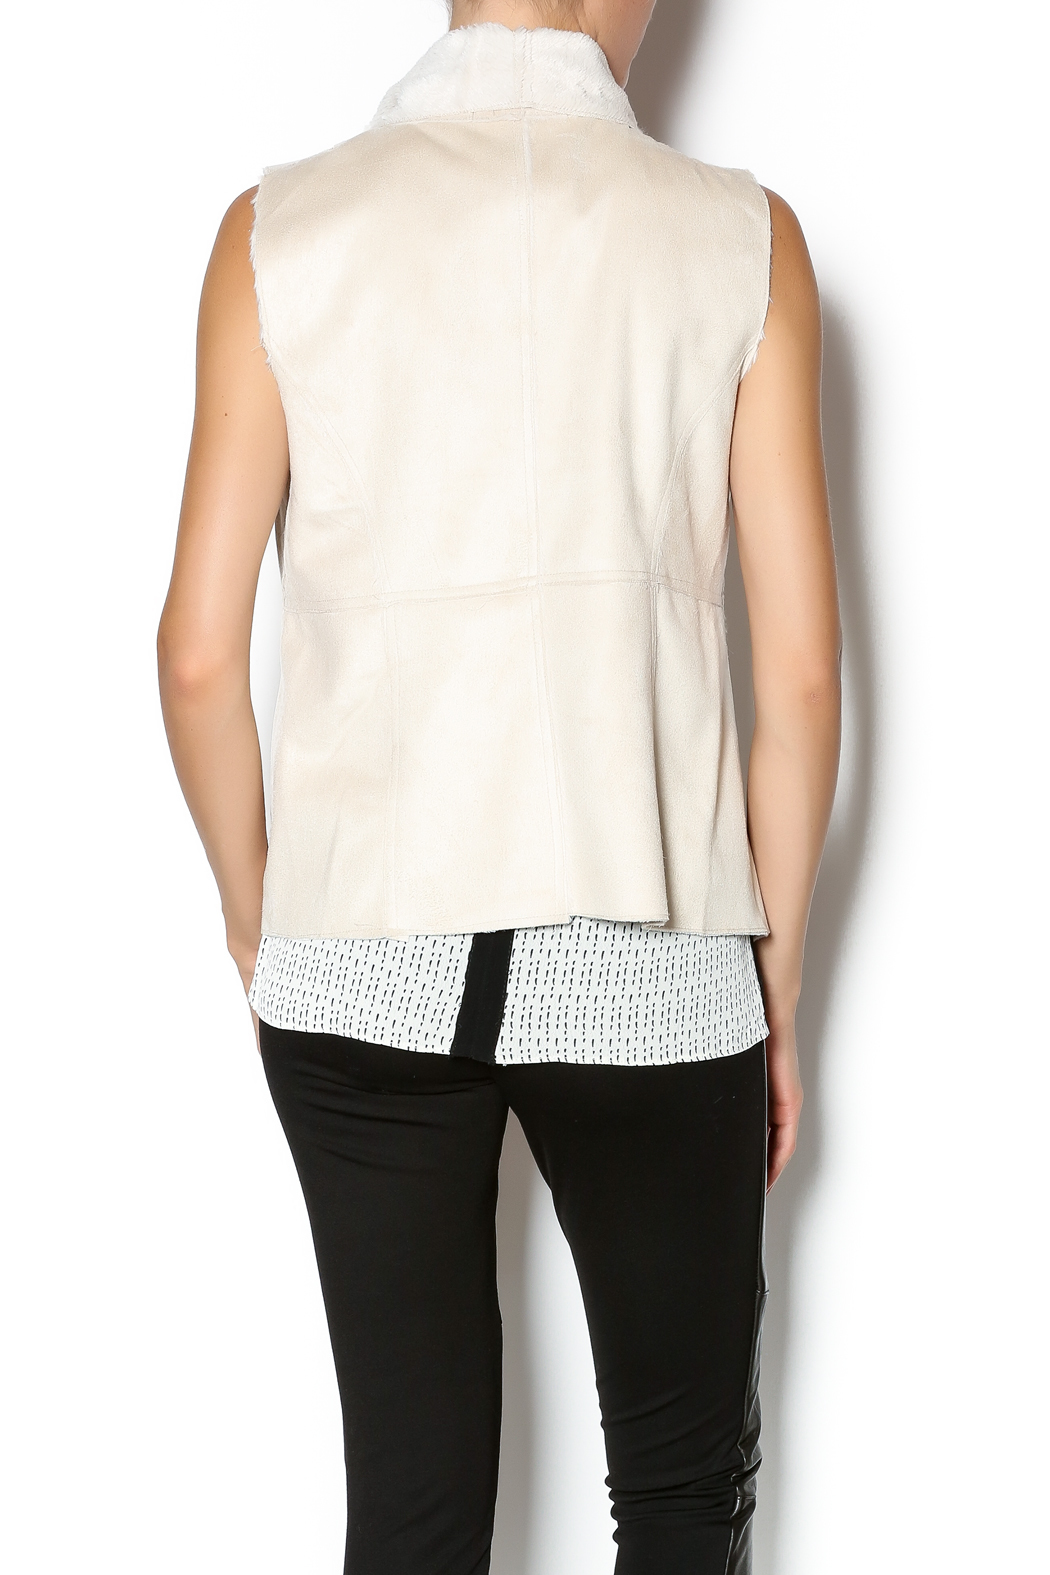 Bishop + Young Faux Suede Vest - Back Cropped Image